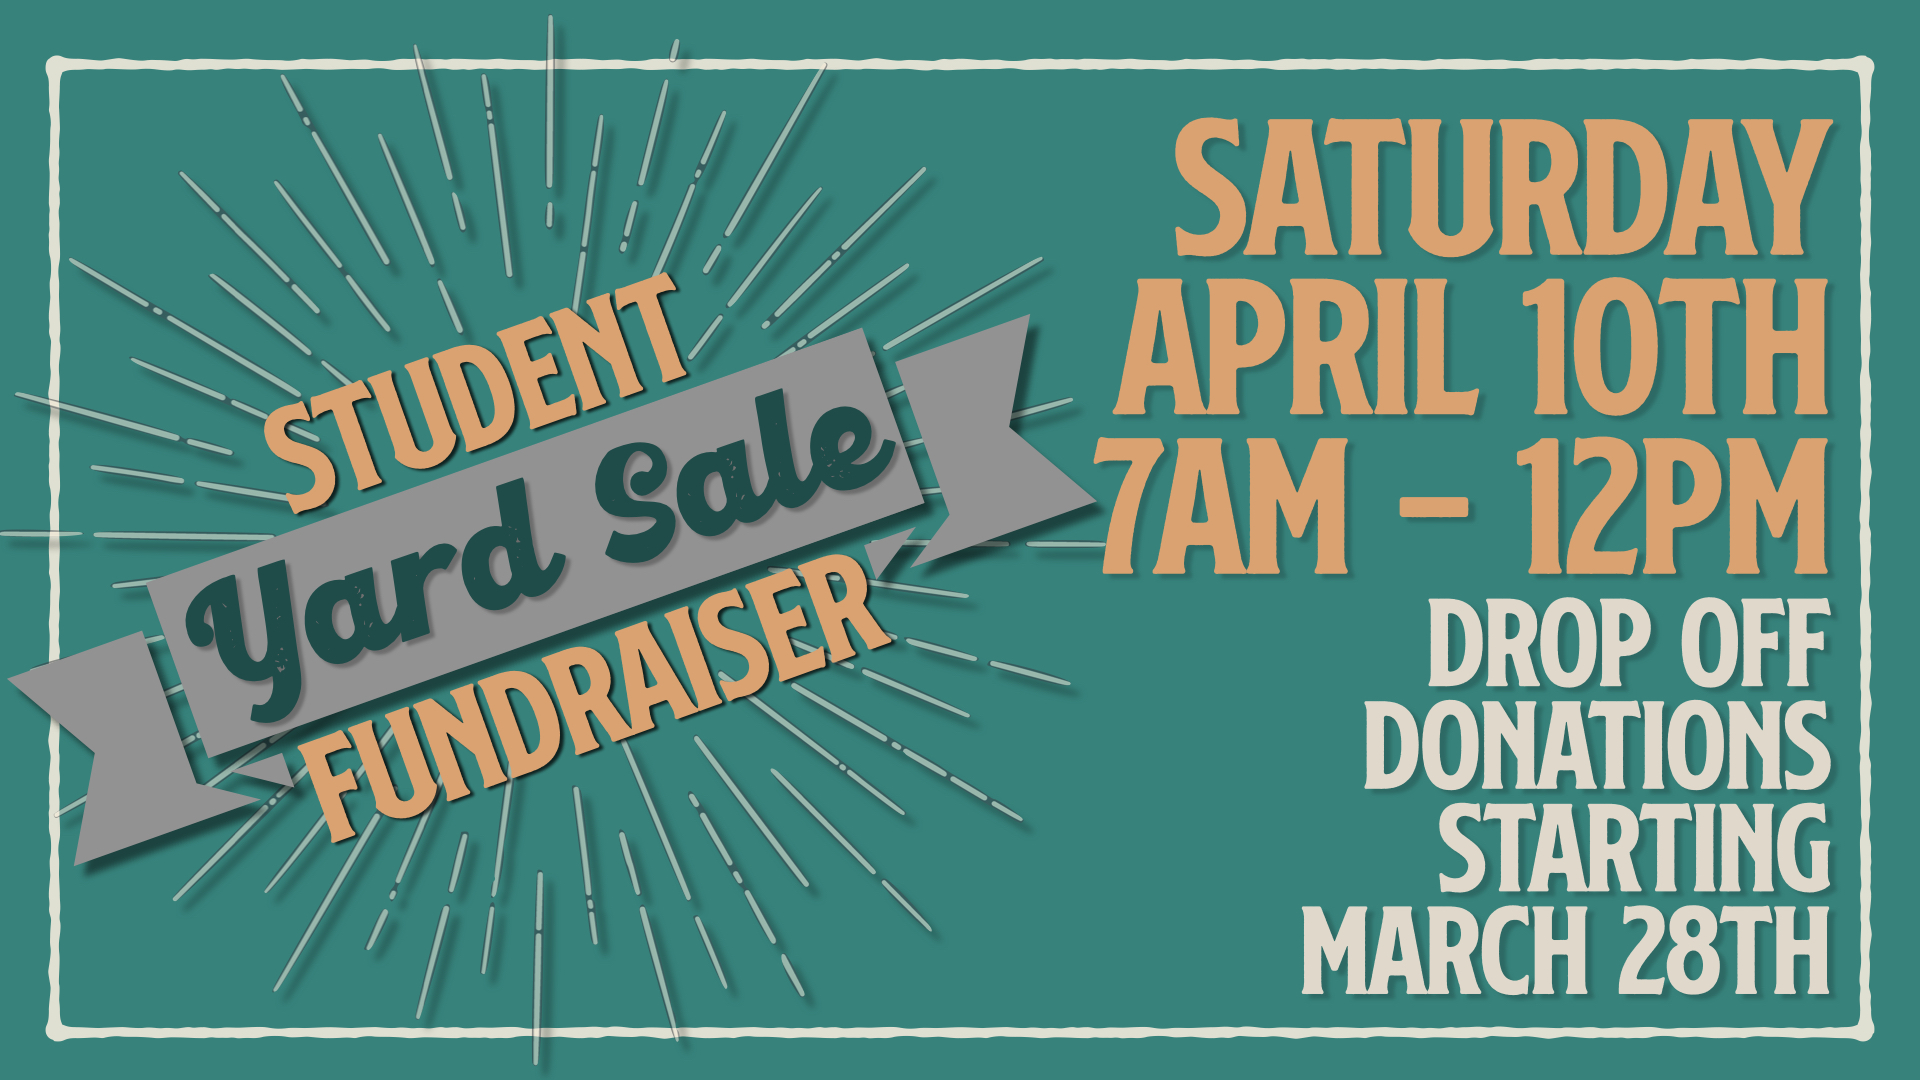 Youth Yard Sale 2021 general.001 image